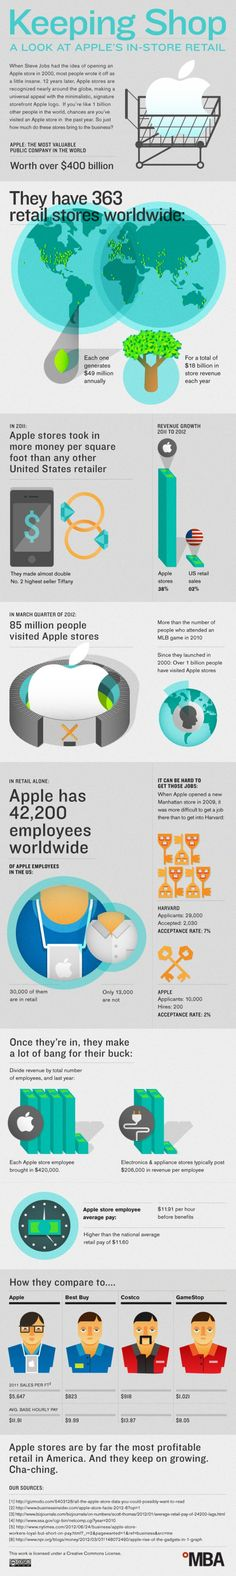 Apple-Retail-Store-infographic